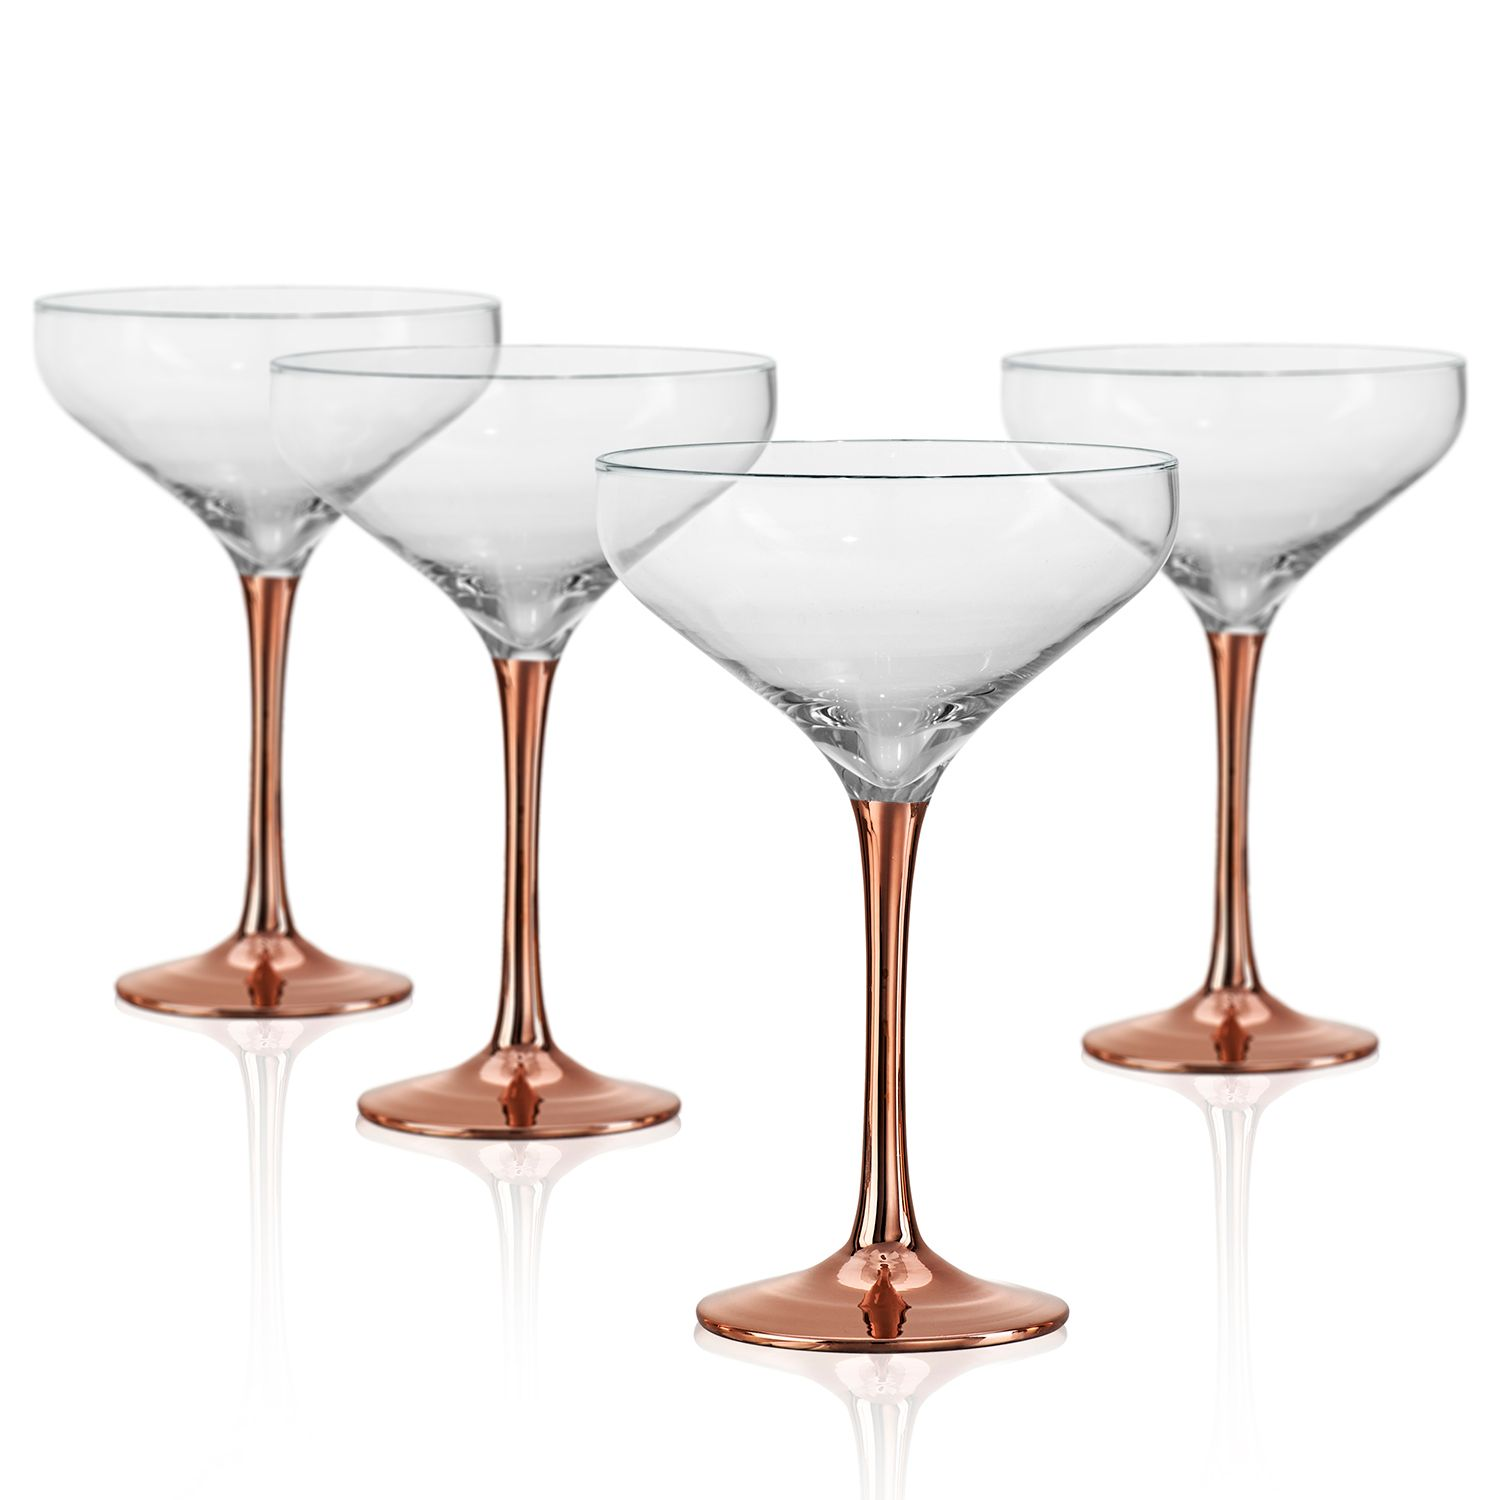 Champagne Coupe Artland Coppertino 4 Pc Champagne Coupe Set